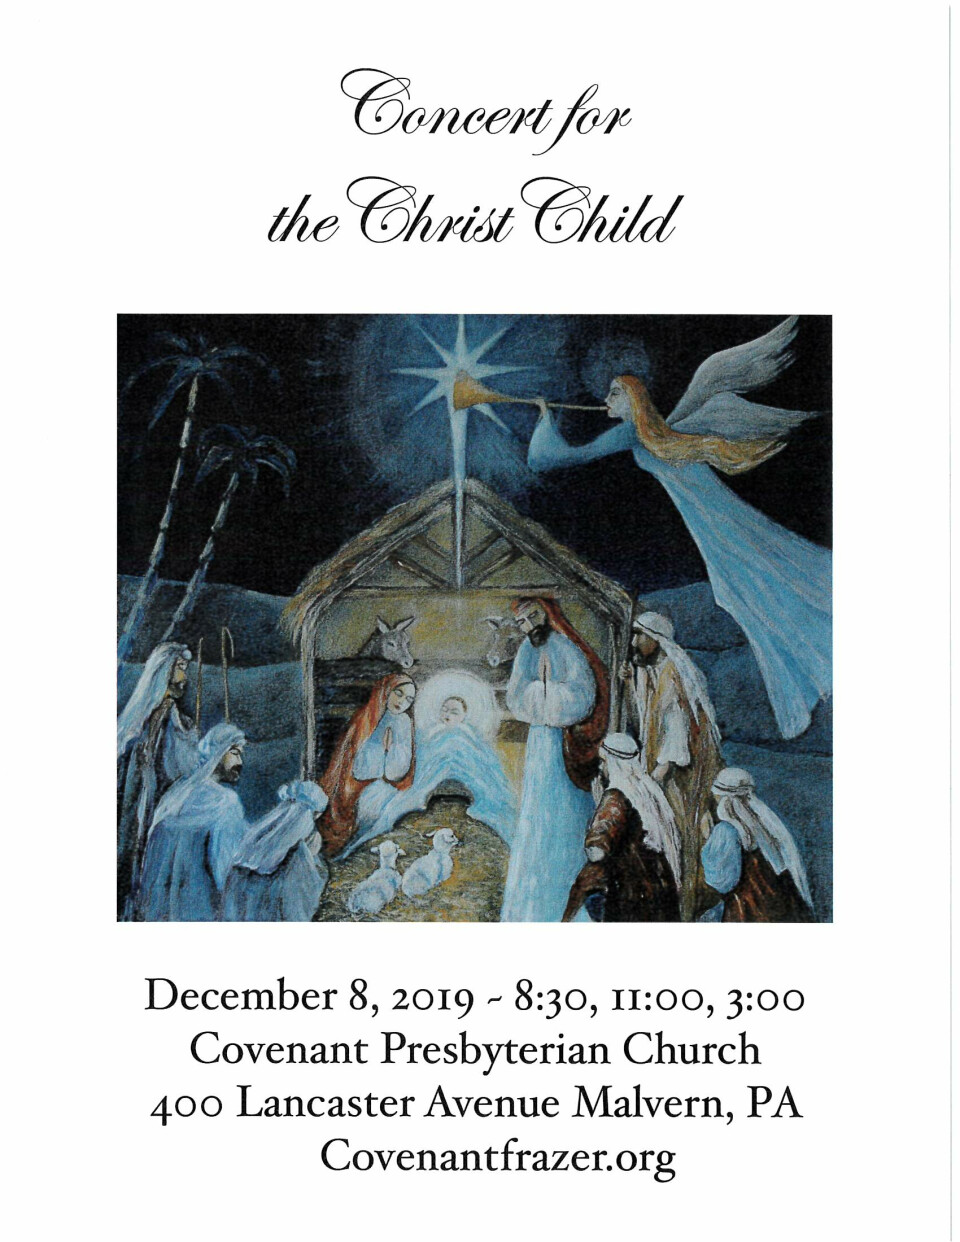 Concert for the Christ Child